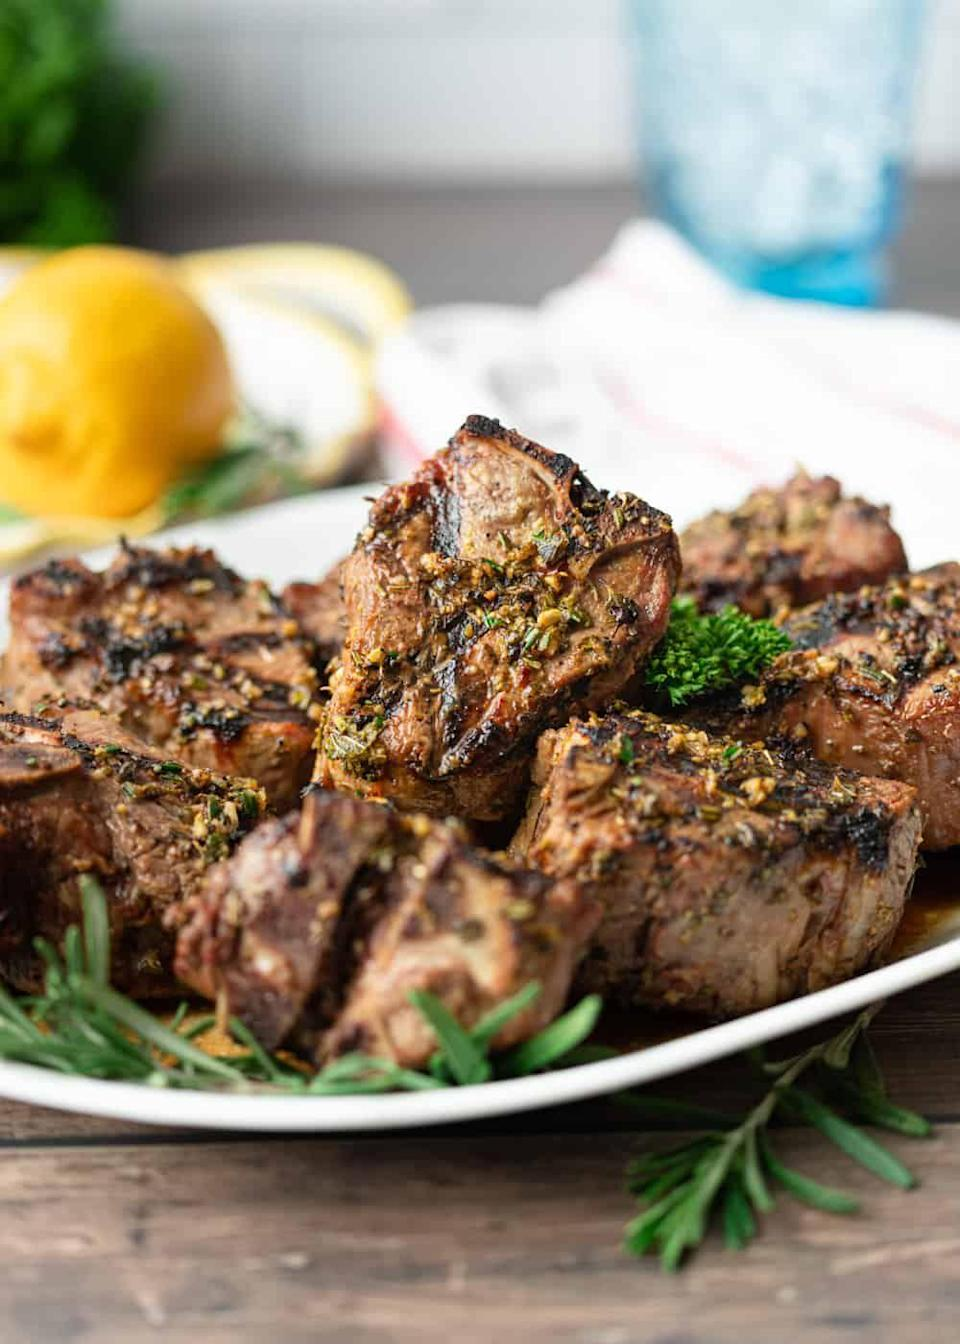 """<p>Juicy, juicy, juicy and impressive to look at, am I right? These lamb loin chops are coated in herbs and spices for a tender, delicious and easy dinner. </p><p>Get the <a href=""""https://keviniscooking.com/lemon-rosemary-grilled-lamb-loin-chops/"""" rel=""""nofollow noopener"""" target=""""_blank"""" data-ylk=""""slk:Greek Grilled Lamb Loin Chops"""" class=""""link rapid-noclick-resp"""">Greek Grilled Lamb Loin Chops</a> recipe. </p><p>Recipe from <a href=""""https://keviniscooking.com/"""" rel=""""nofollow noopener"""" target=""""_blank"""" data-ylk=""""slk:Kevin Is Cooking"""" class=""""link rapid-noclick-resp"""">Kevin Is Cooking</a>. </p>"""